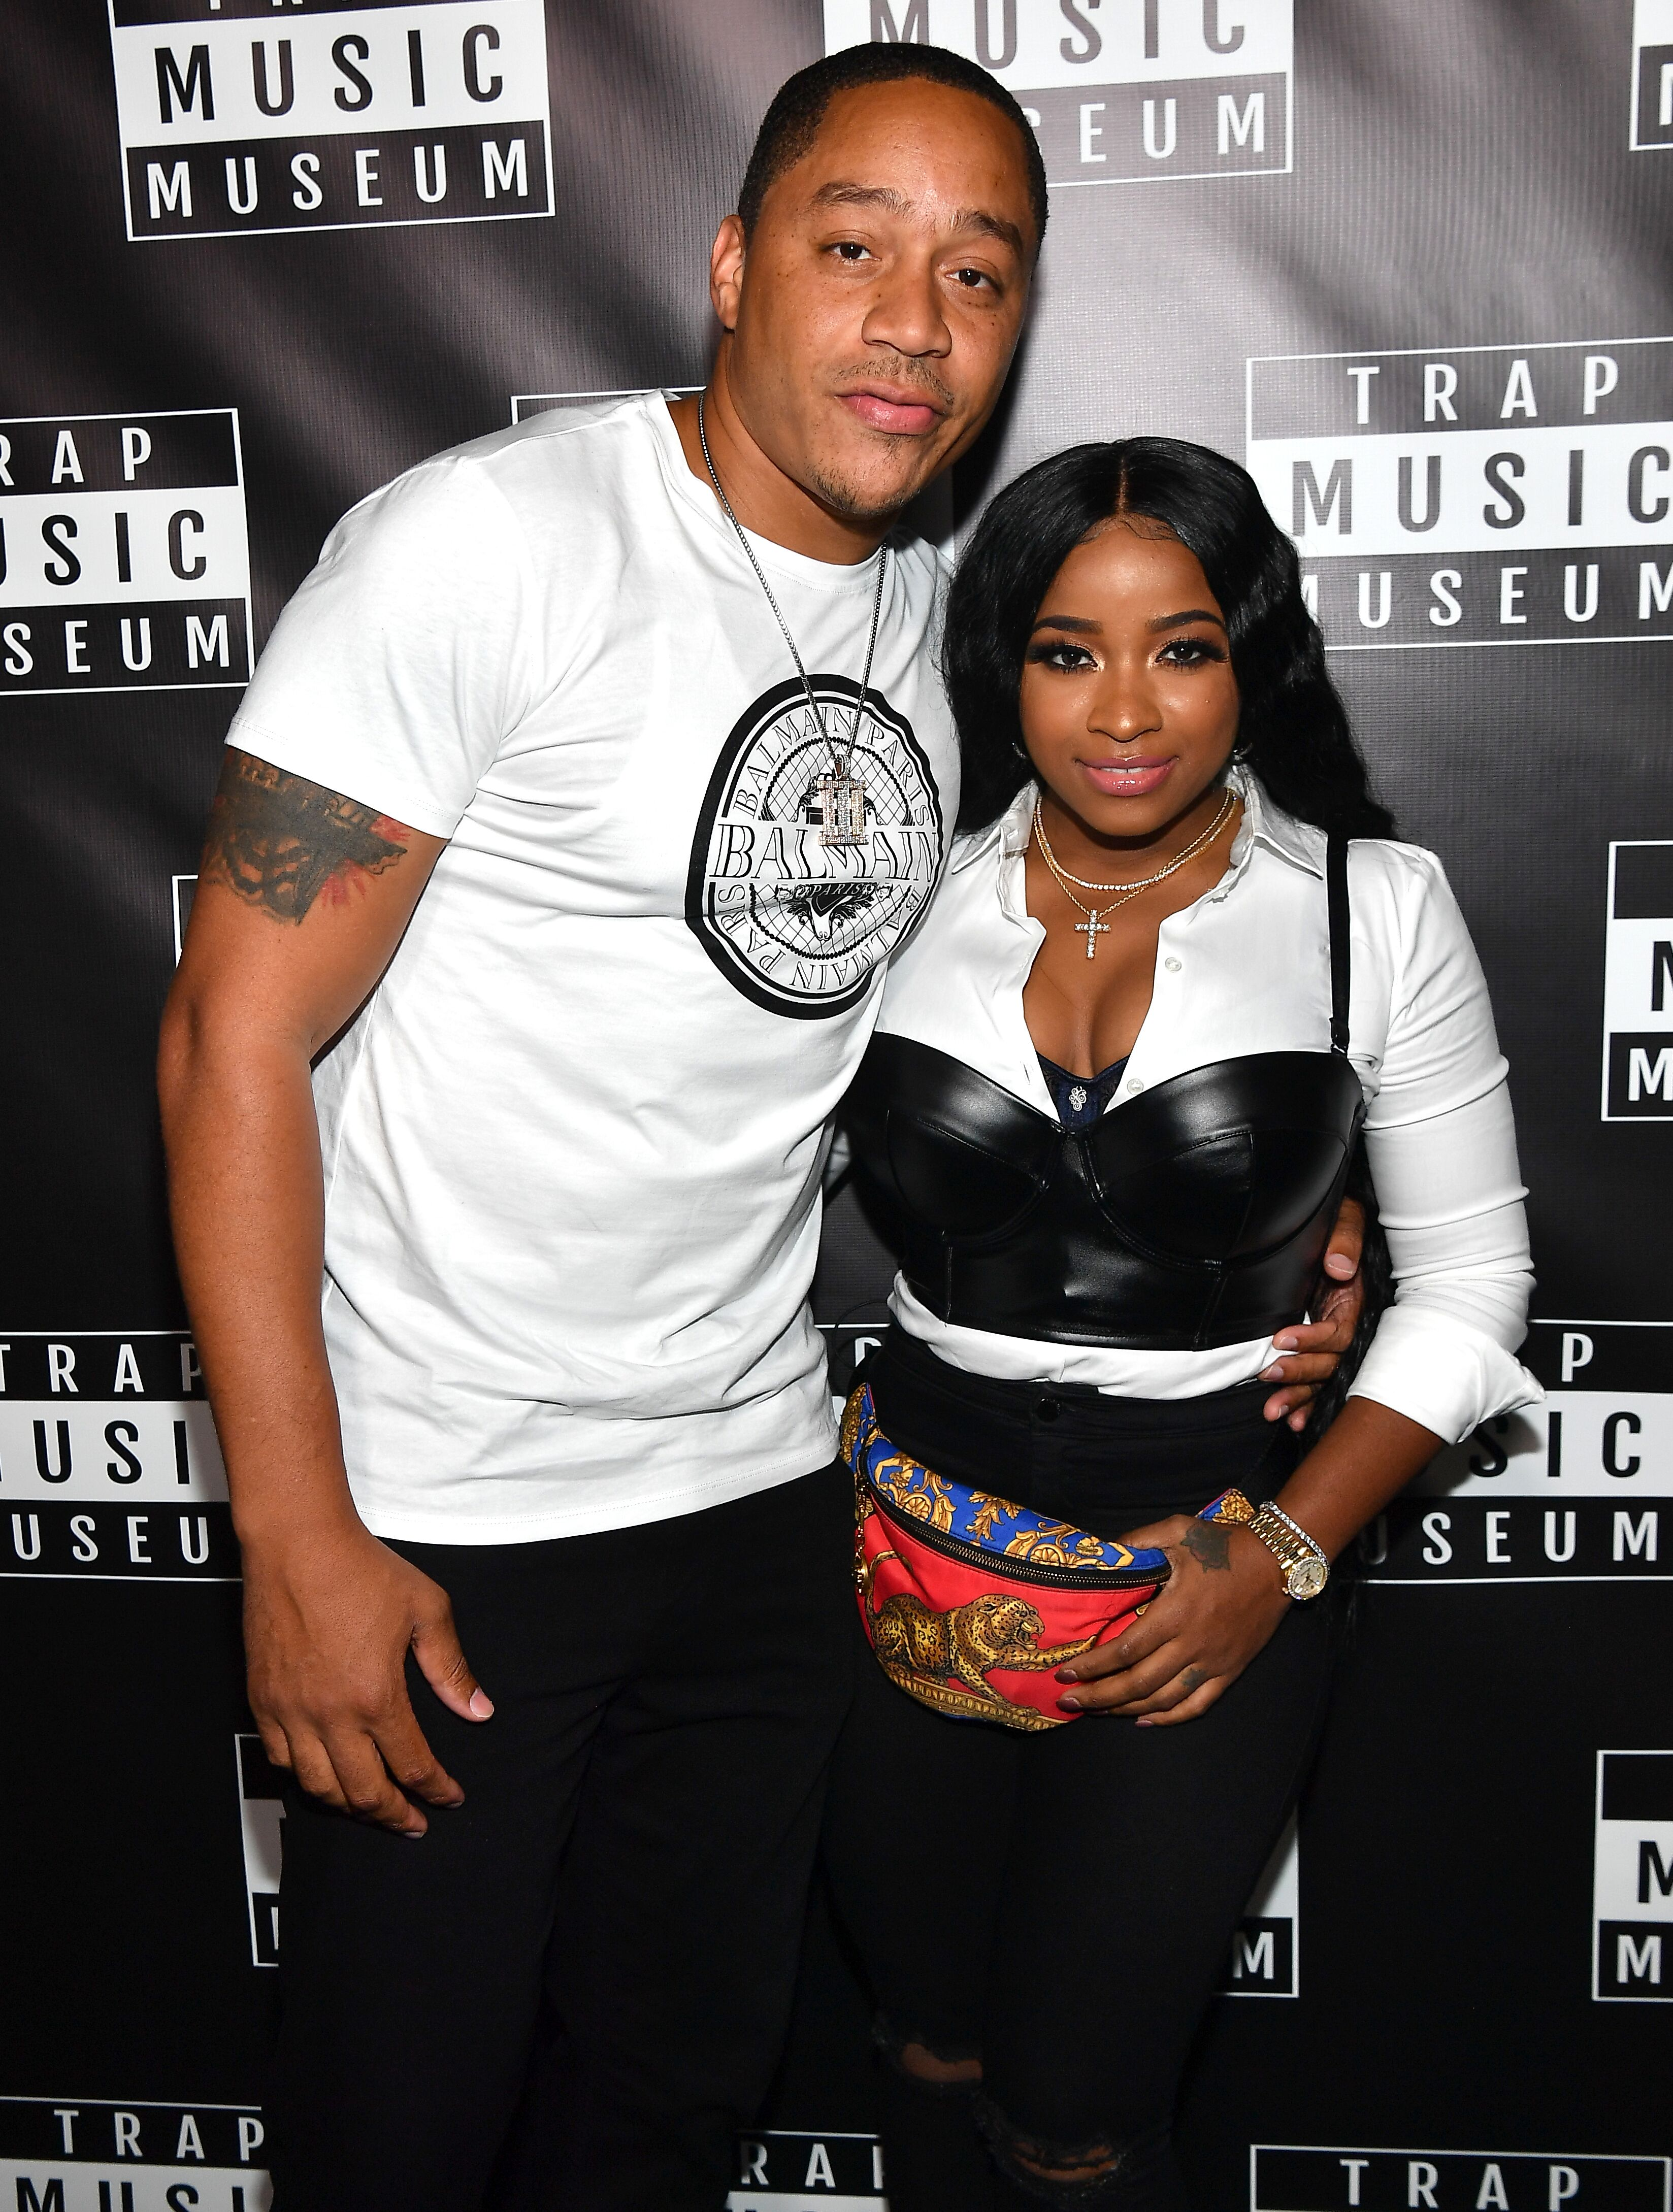 Toya Johnson and her fiancé, Robert Rushing pose at the VIP preview of Trap Music Museum in September 2018. | Photo: Getty Images